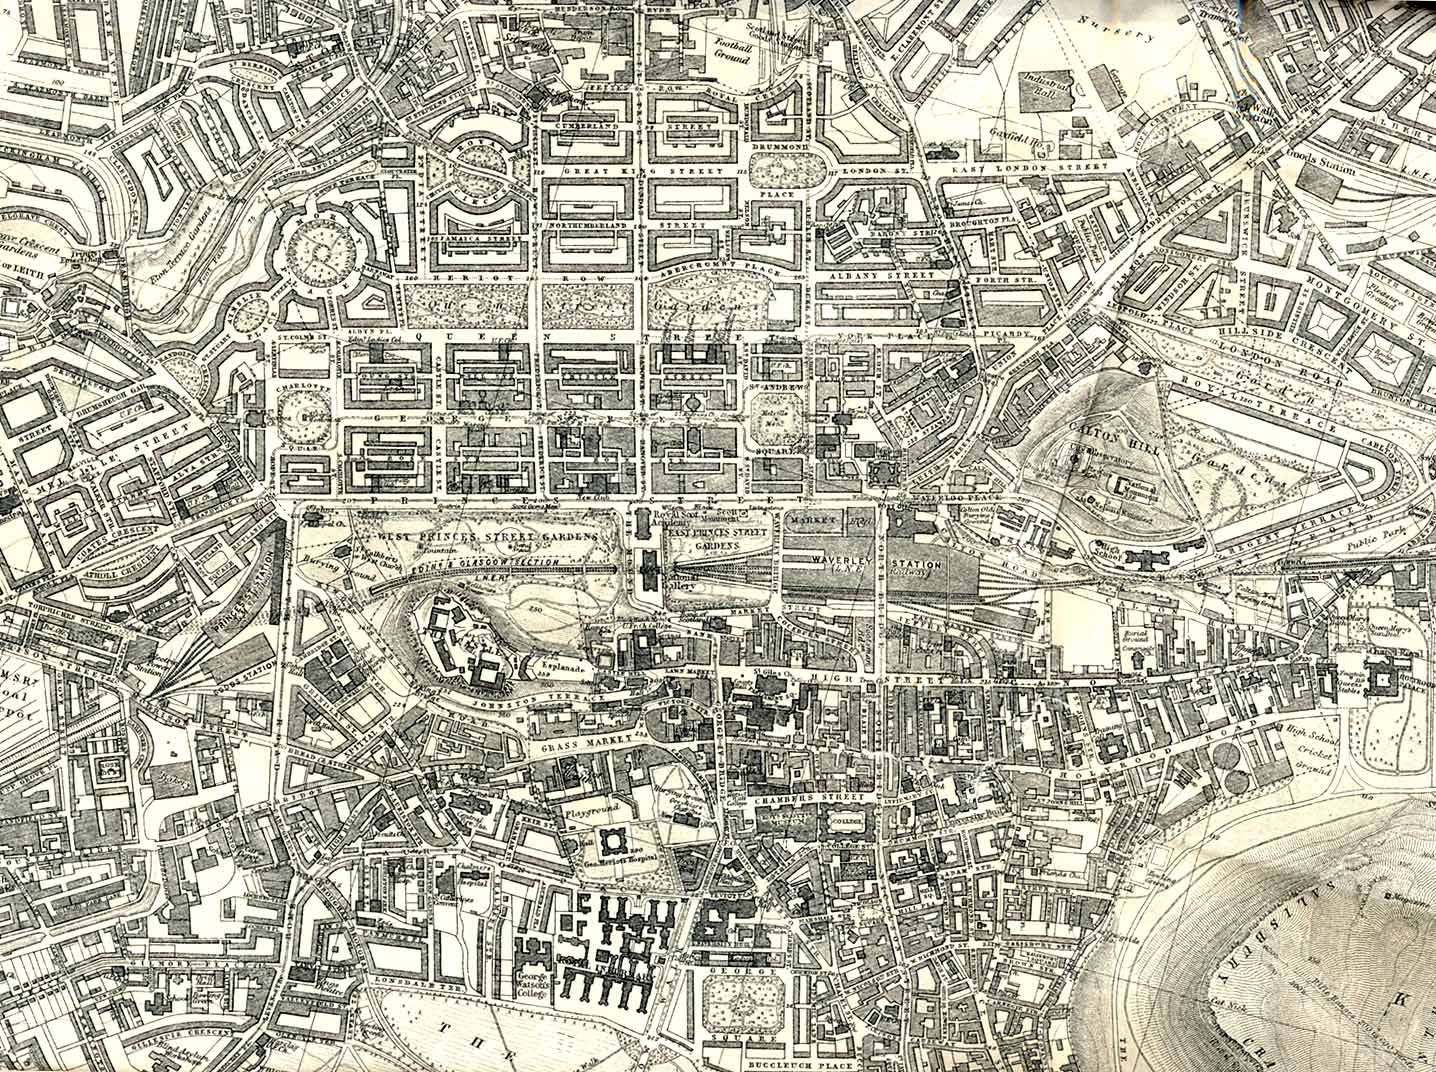 Map of Edinburgh  -  Extract from a map by Bartholomew  -  1925  -  enlarged